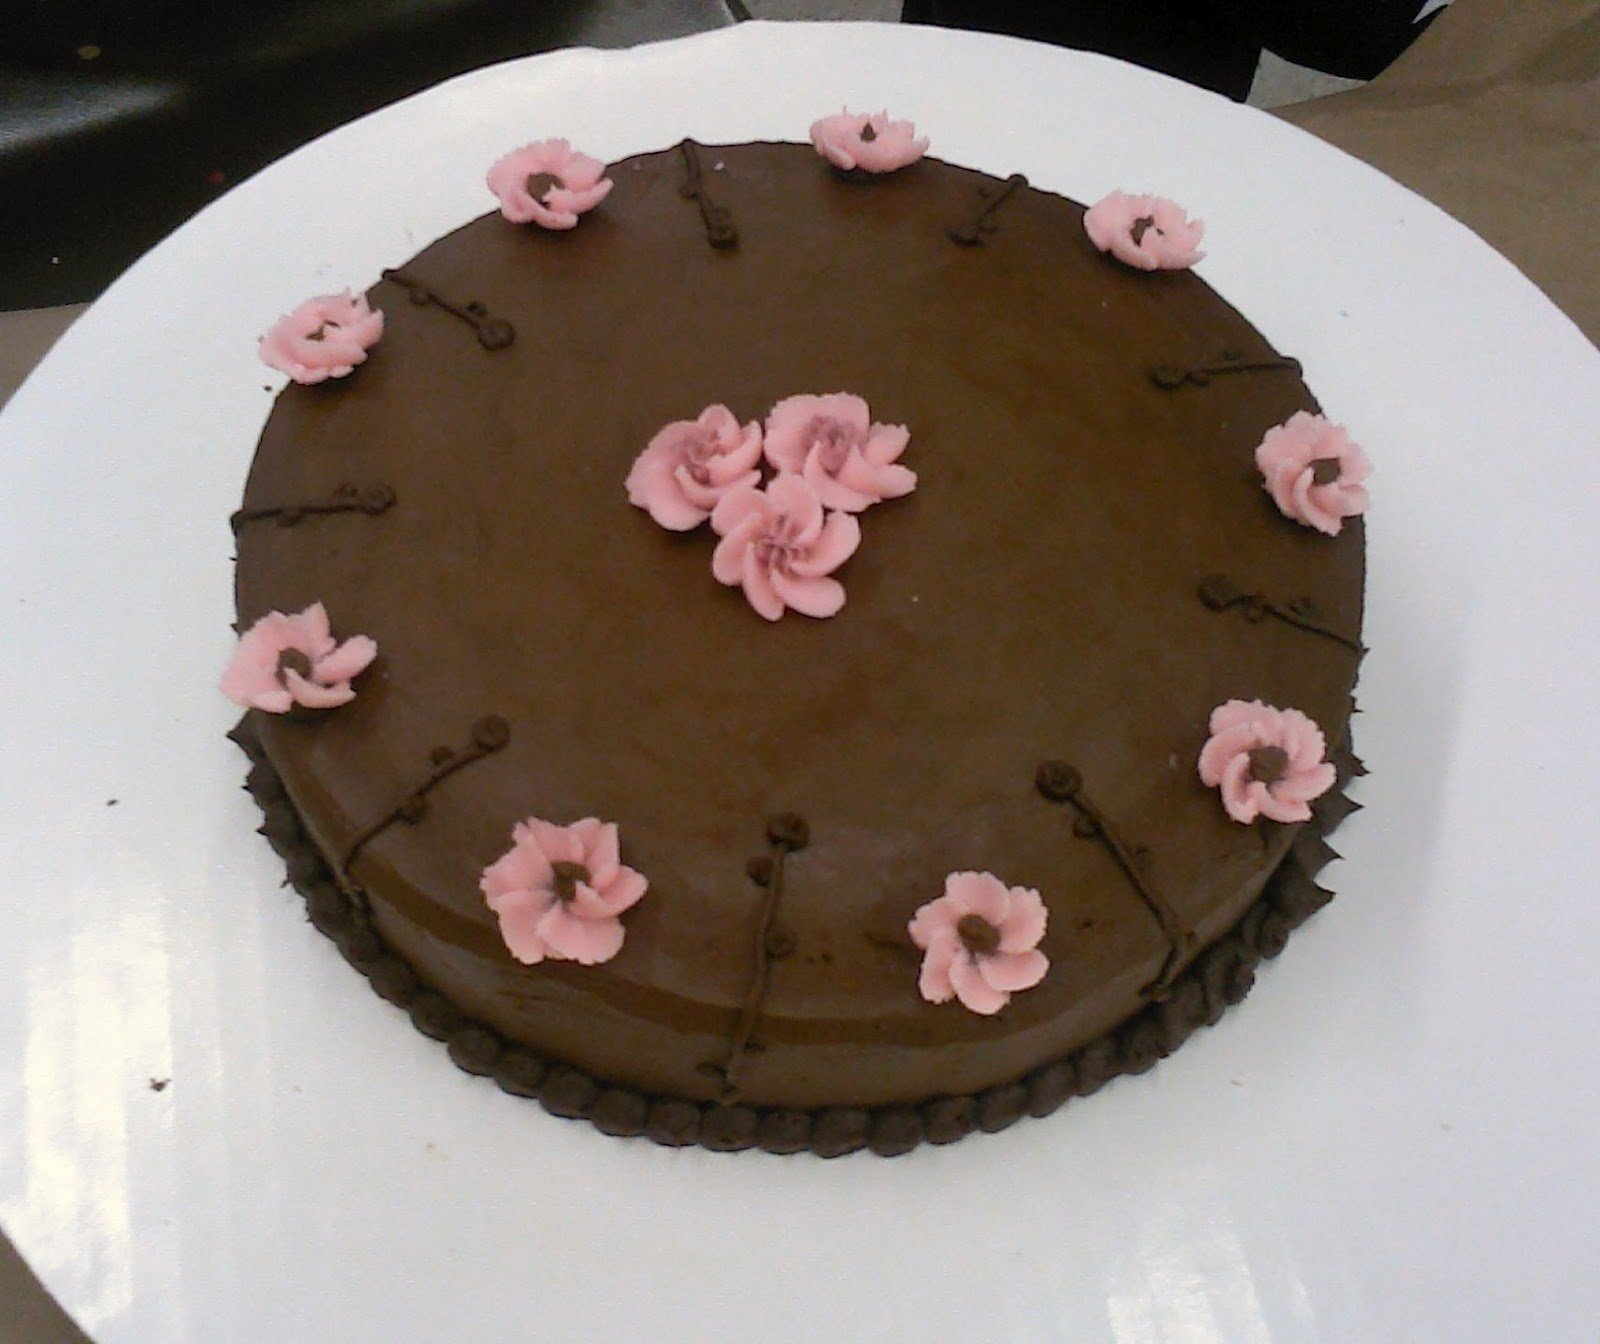 Korin s sweet creations: Flower and Cake Design (course 2)